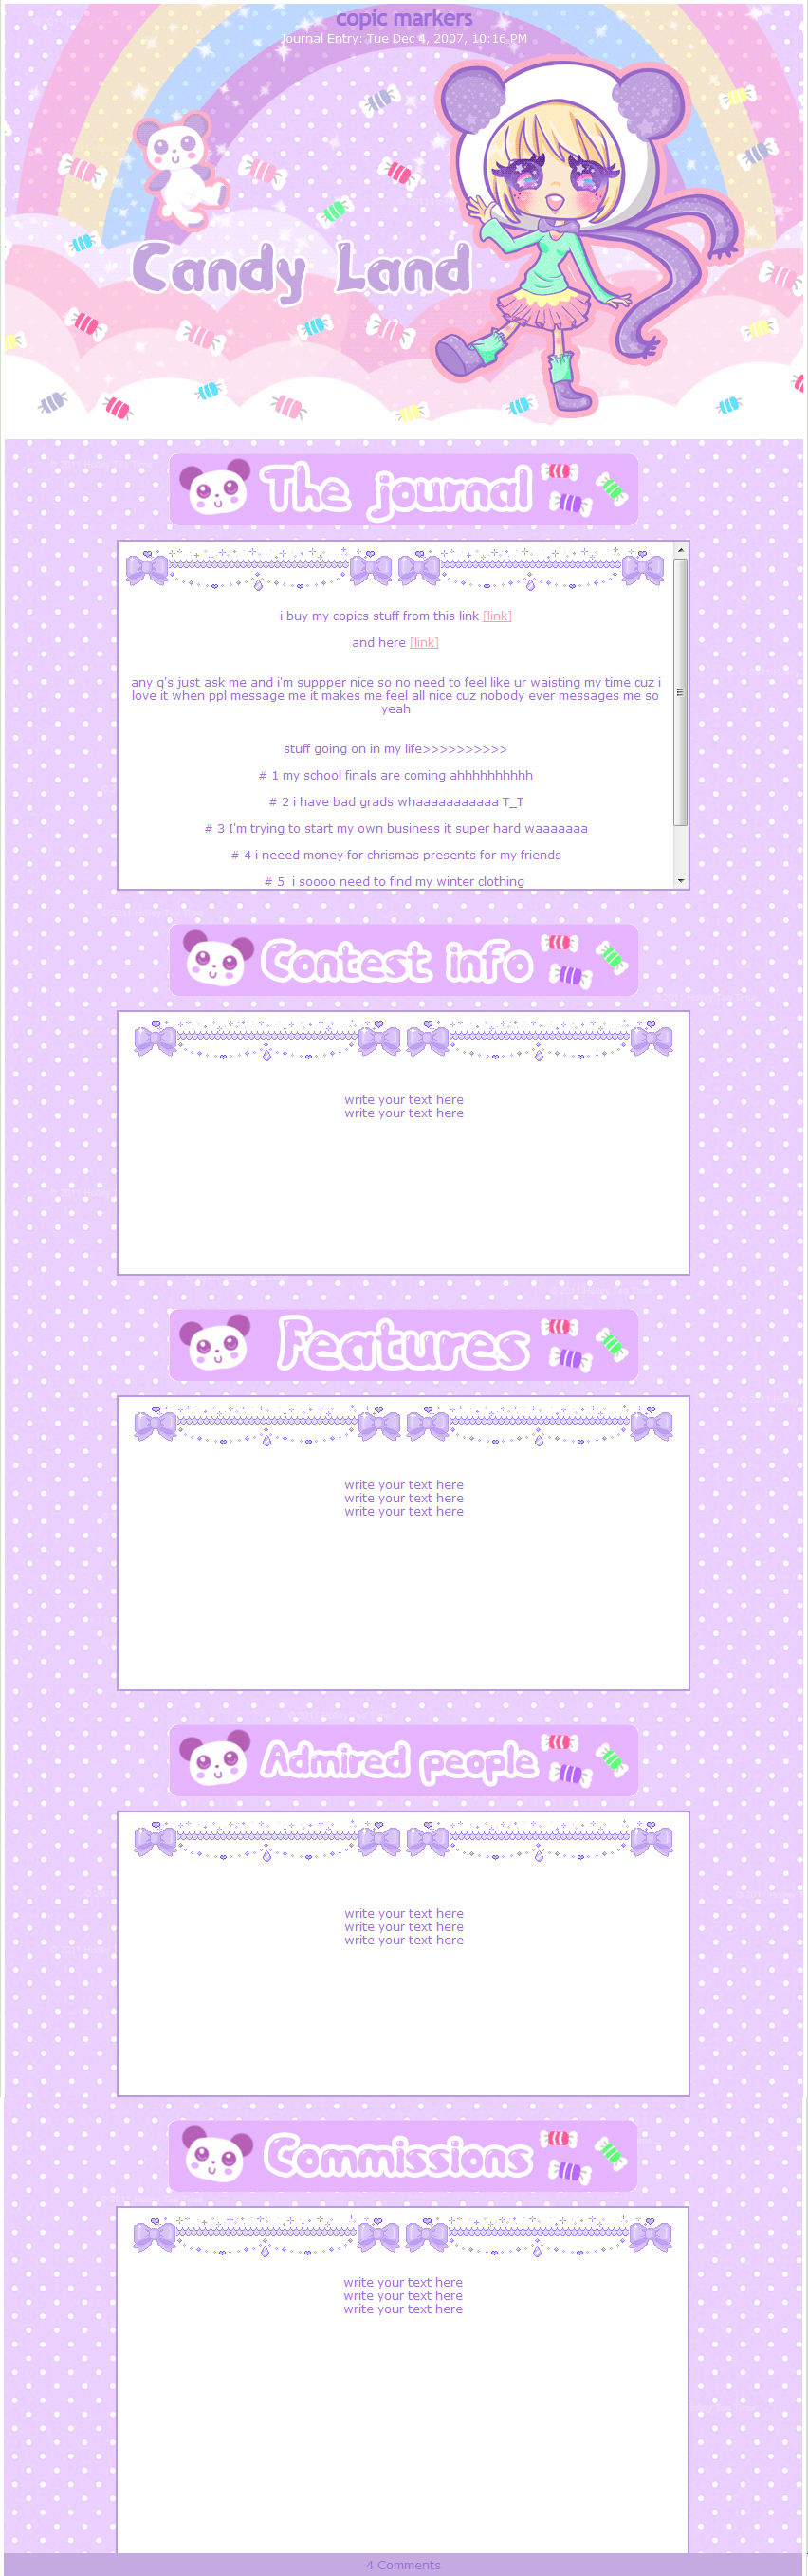 Kawaii Journal skin Candy Land by miemie-chan3